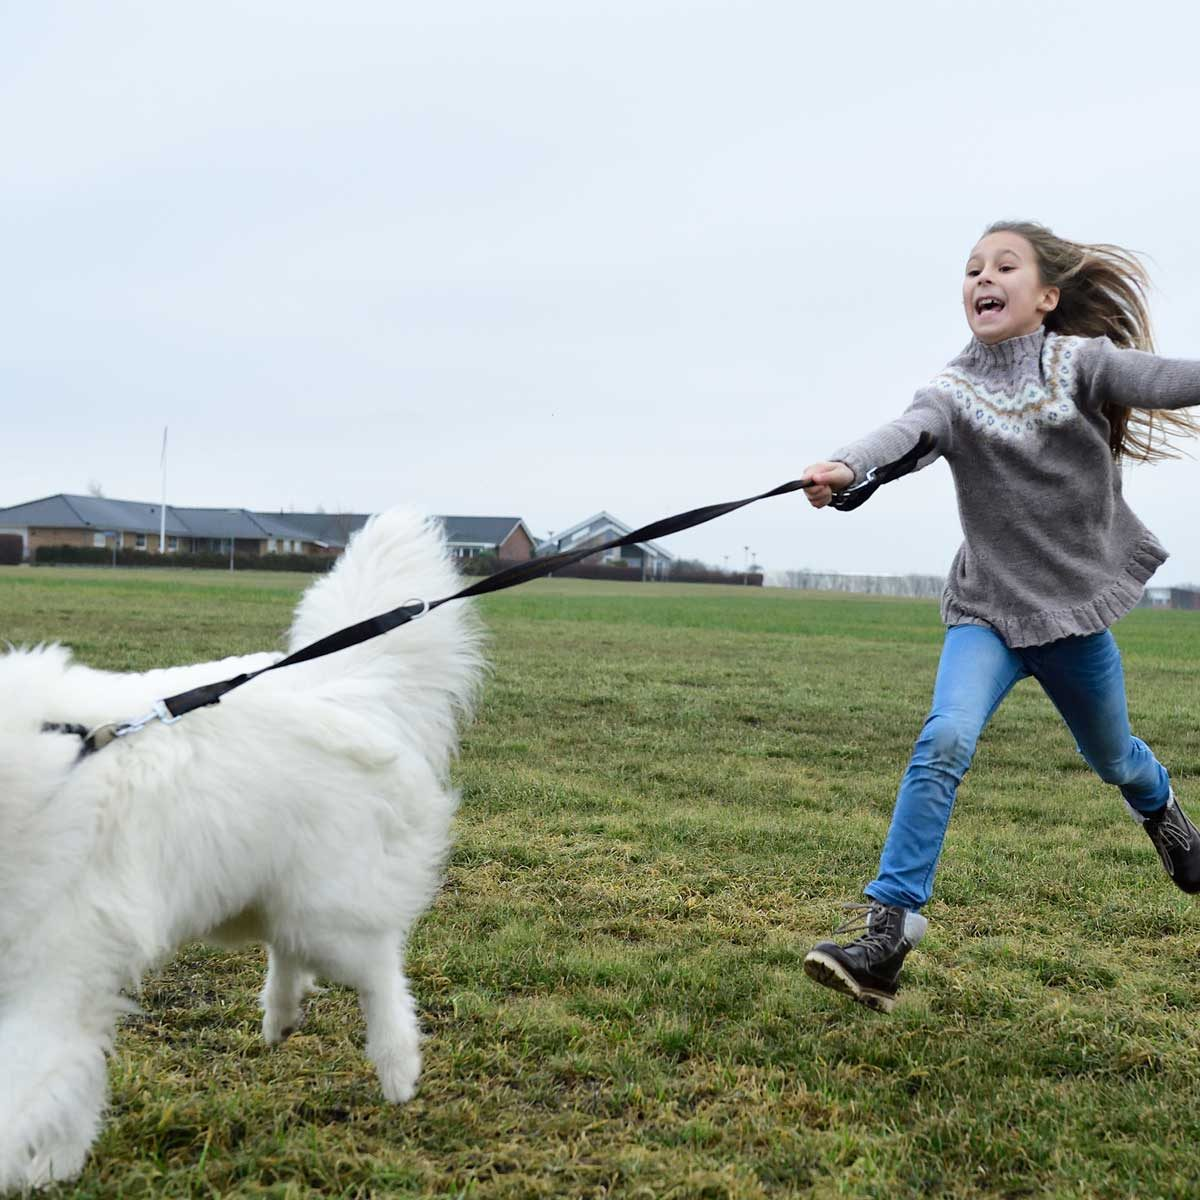 Girl playing with a dog on a leash